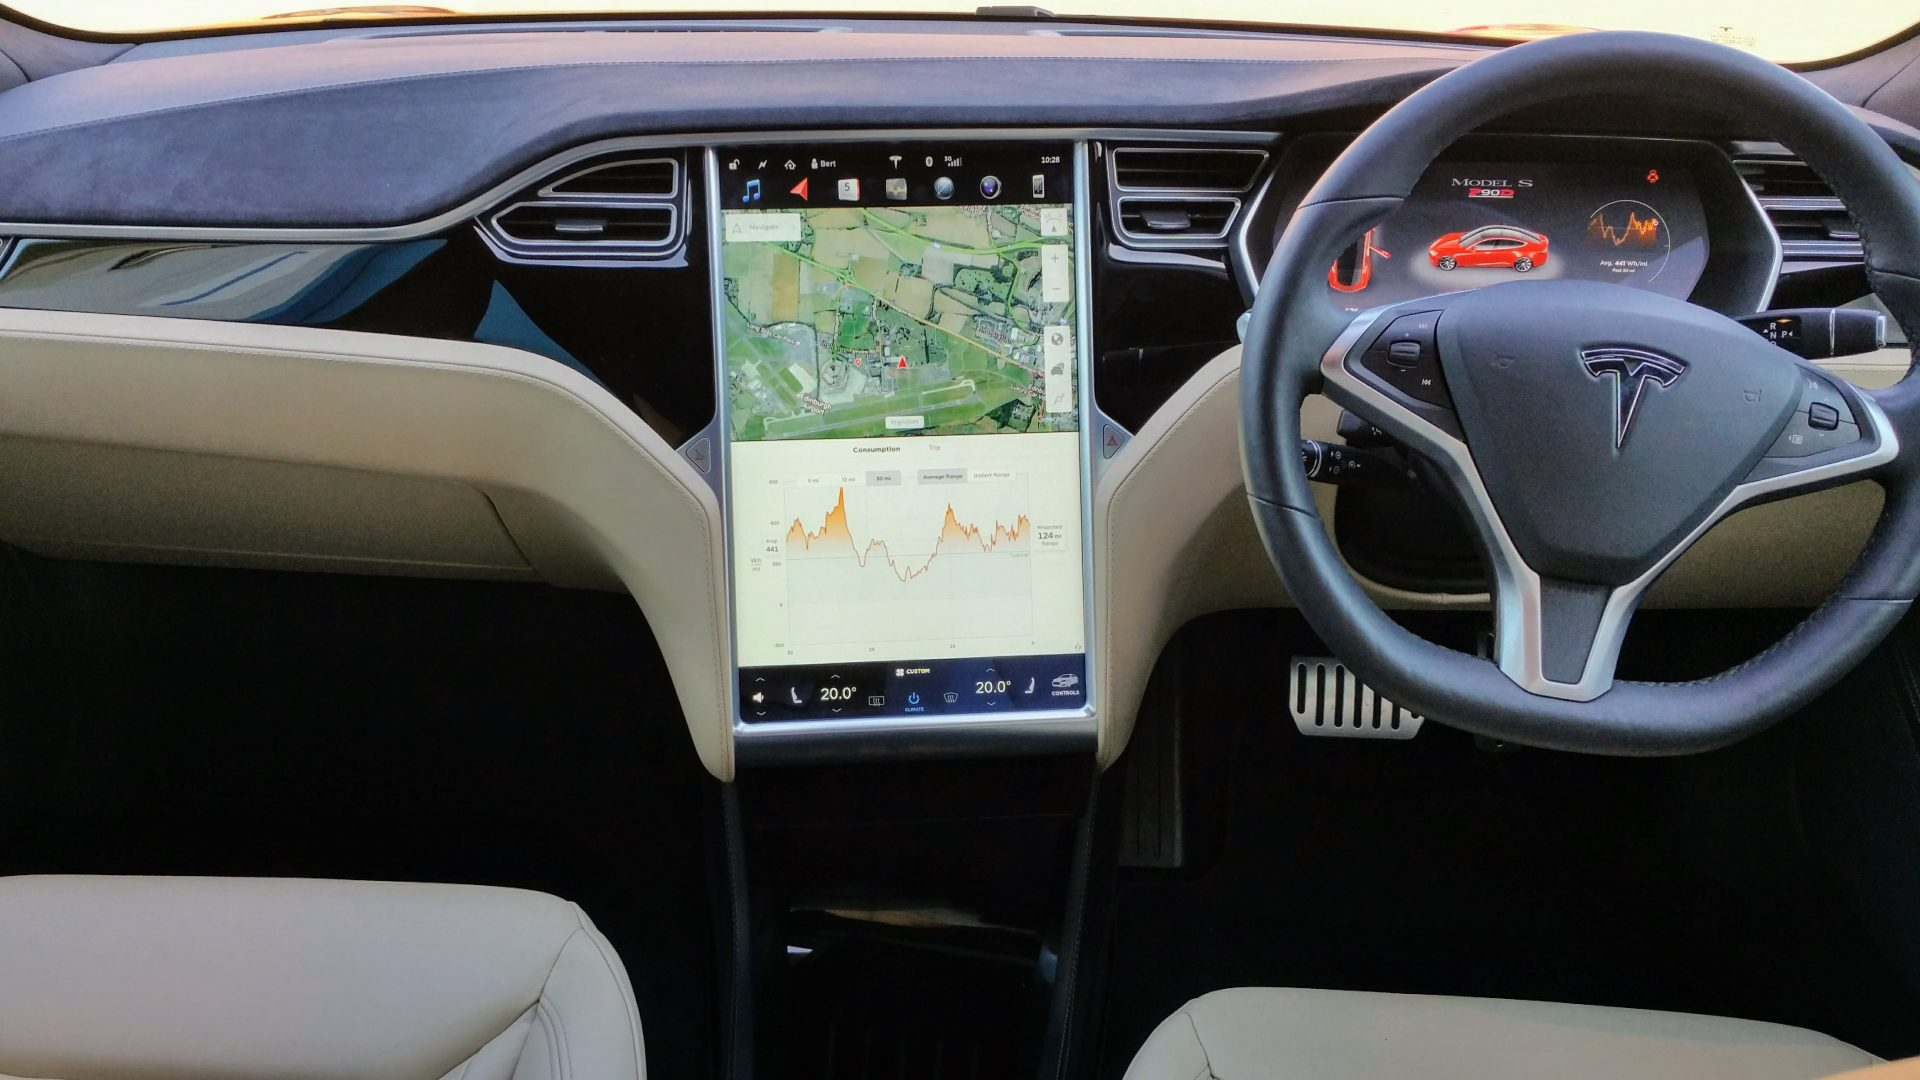 Tesla Model S P90D Interior | Phoo Credit Jack Matthews McMotorsCars.Blogspot.co.uk